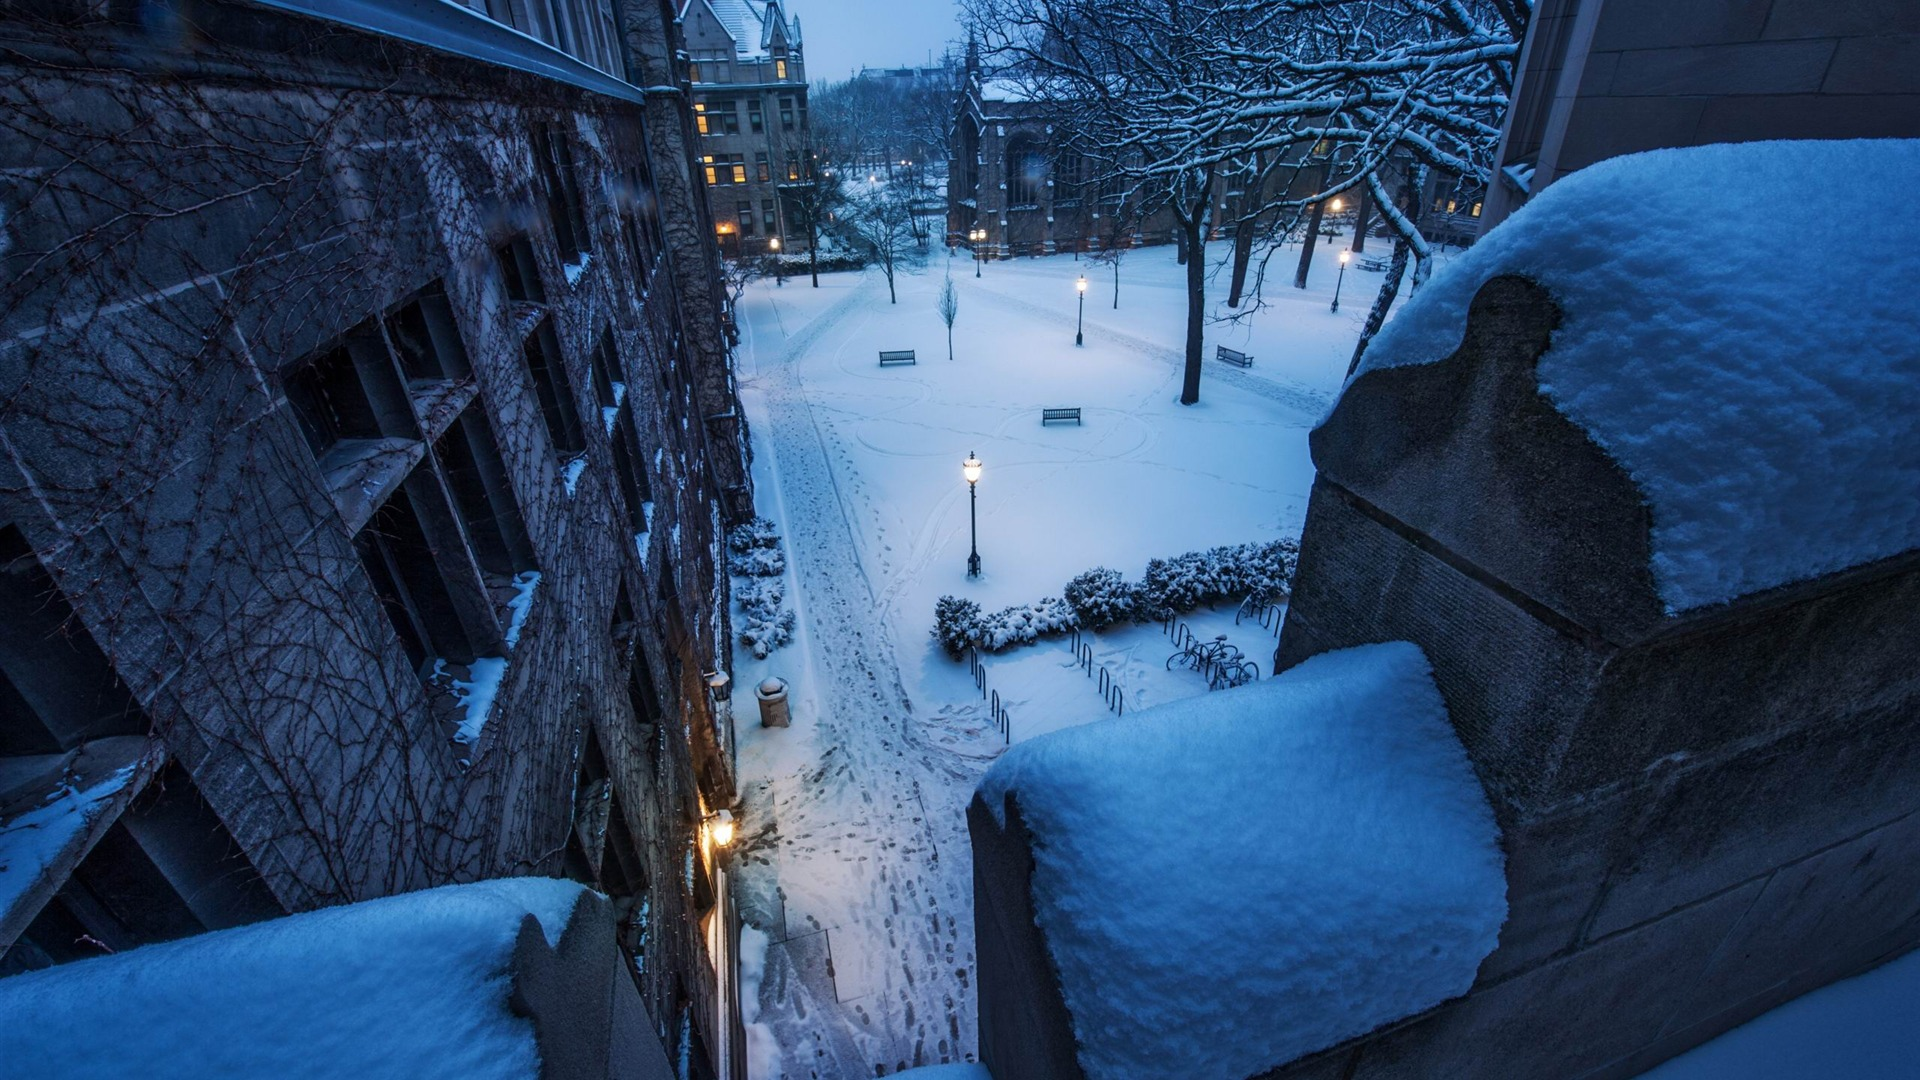 Fresh snow on the balcony-landscape photography wallpaper - .